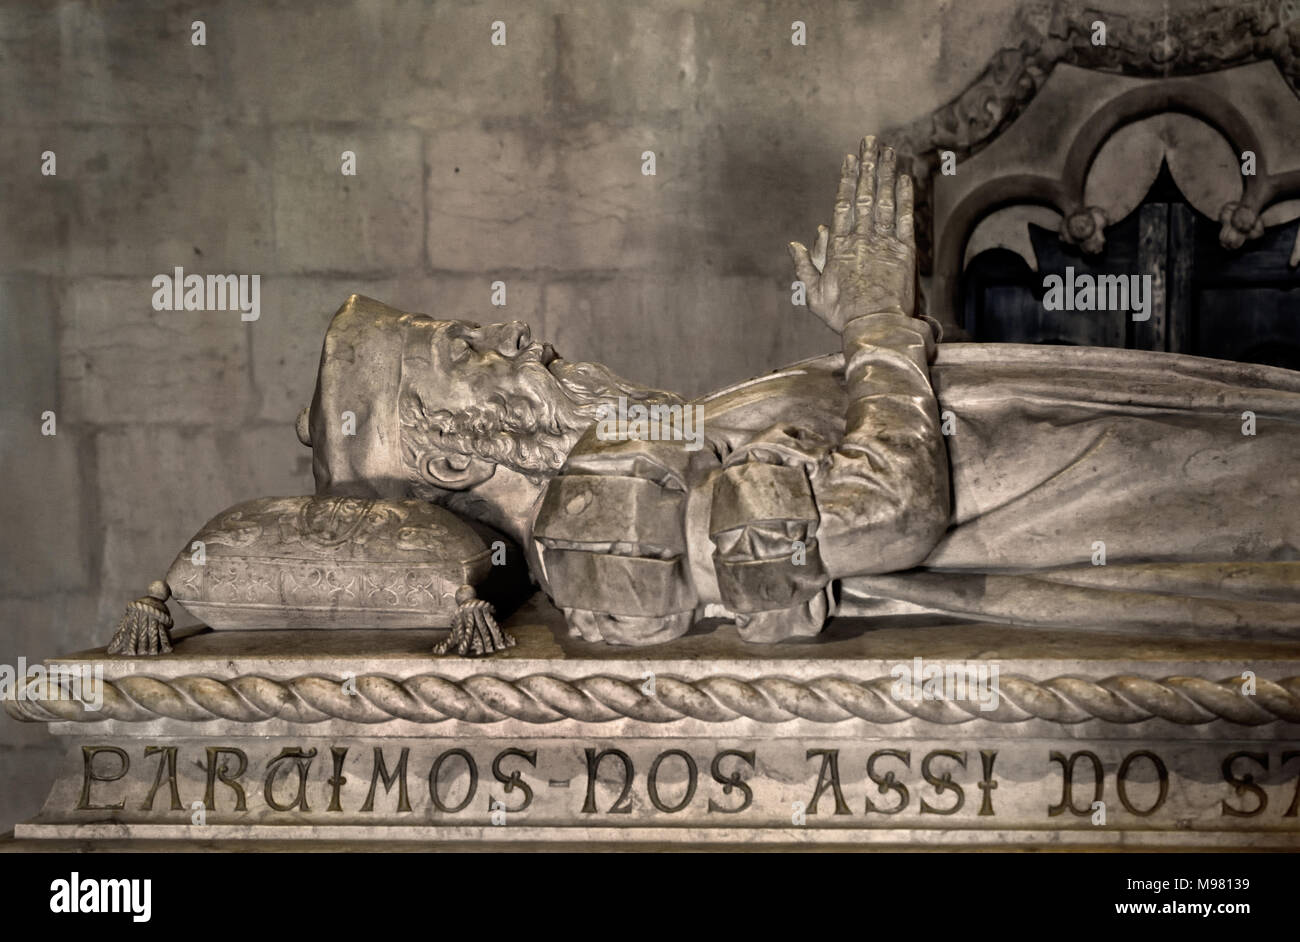 Tomb of Vasco da Gama 1460 - 1524 Portuguese explorer and the first European to reach India by sea. The Jerónimos Monastery (1469–1521)  Hieronymites Monastery, is a former cloister-convent of the Order of Saint Jerome near the Tagus river in the parish of Belém ( The monastery is one of the most prominent examples of the Portuguese Late Gothic Manueline style of architecture in Lisbon.) Portuguese, Portugal. - Stock Image